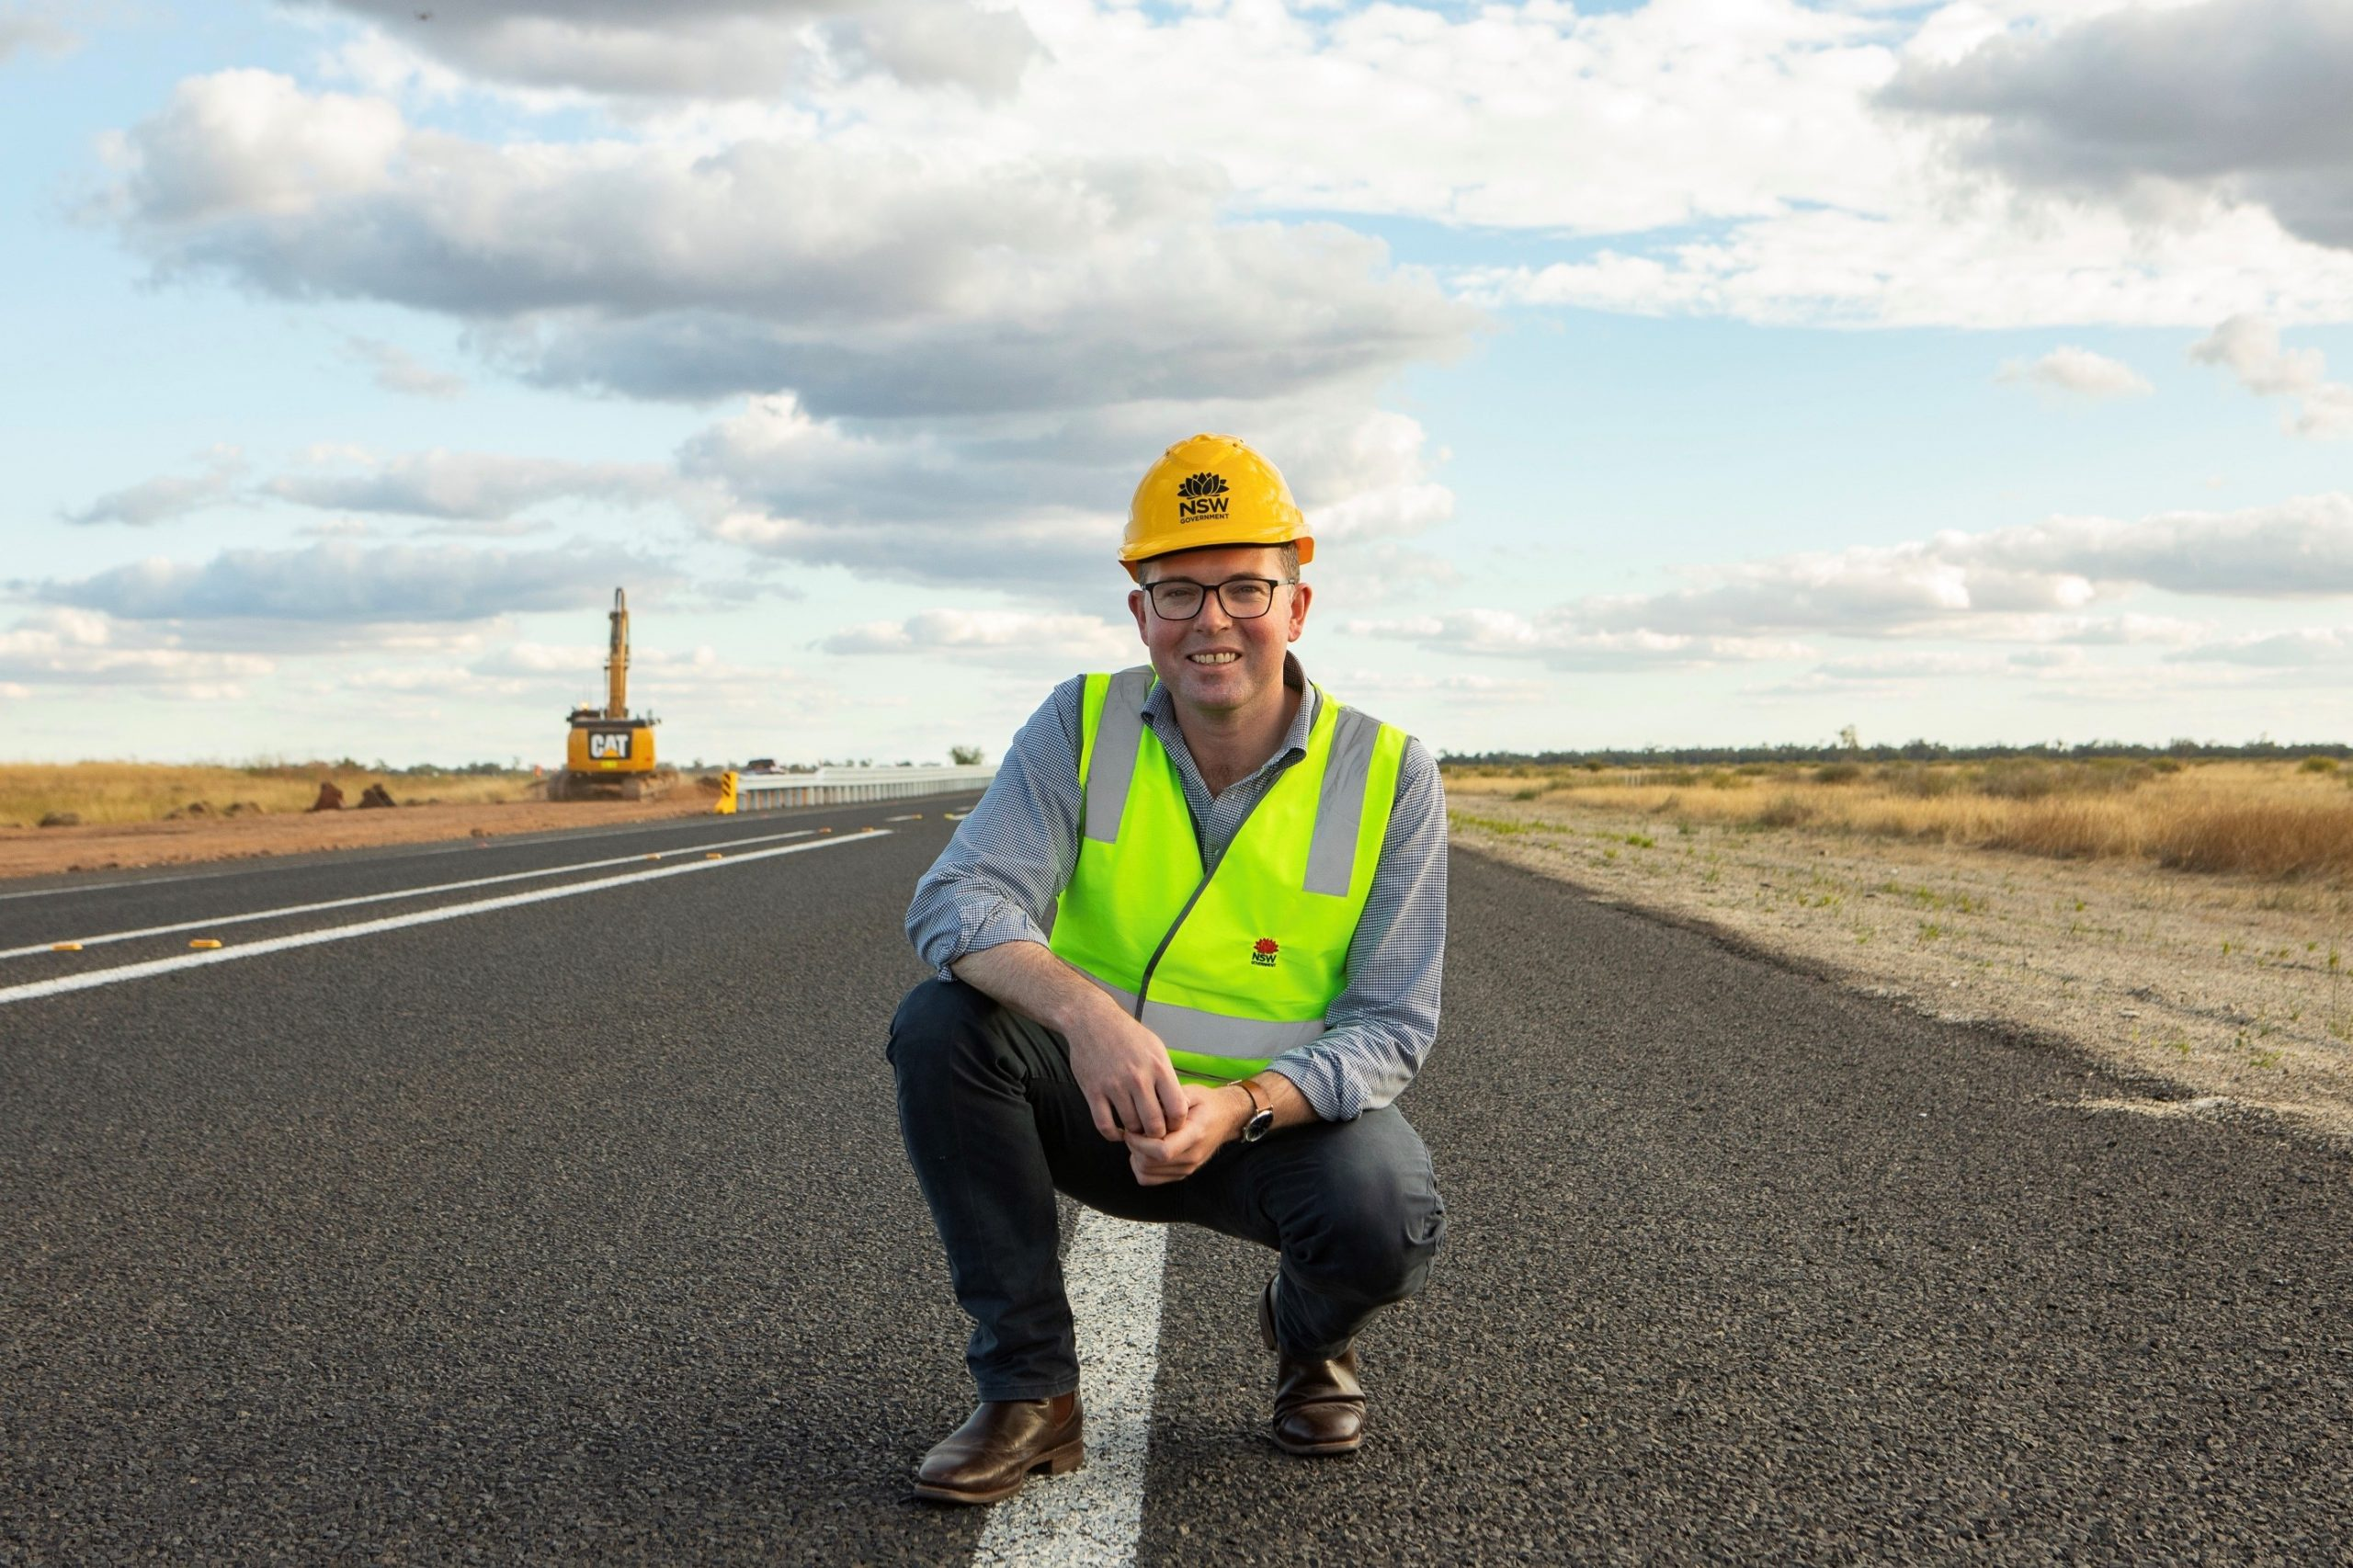 New England Highway safety project commences